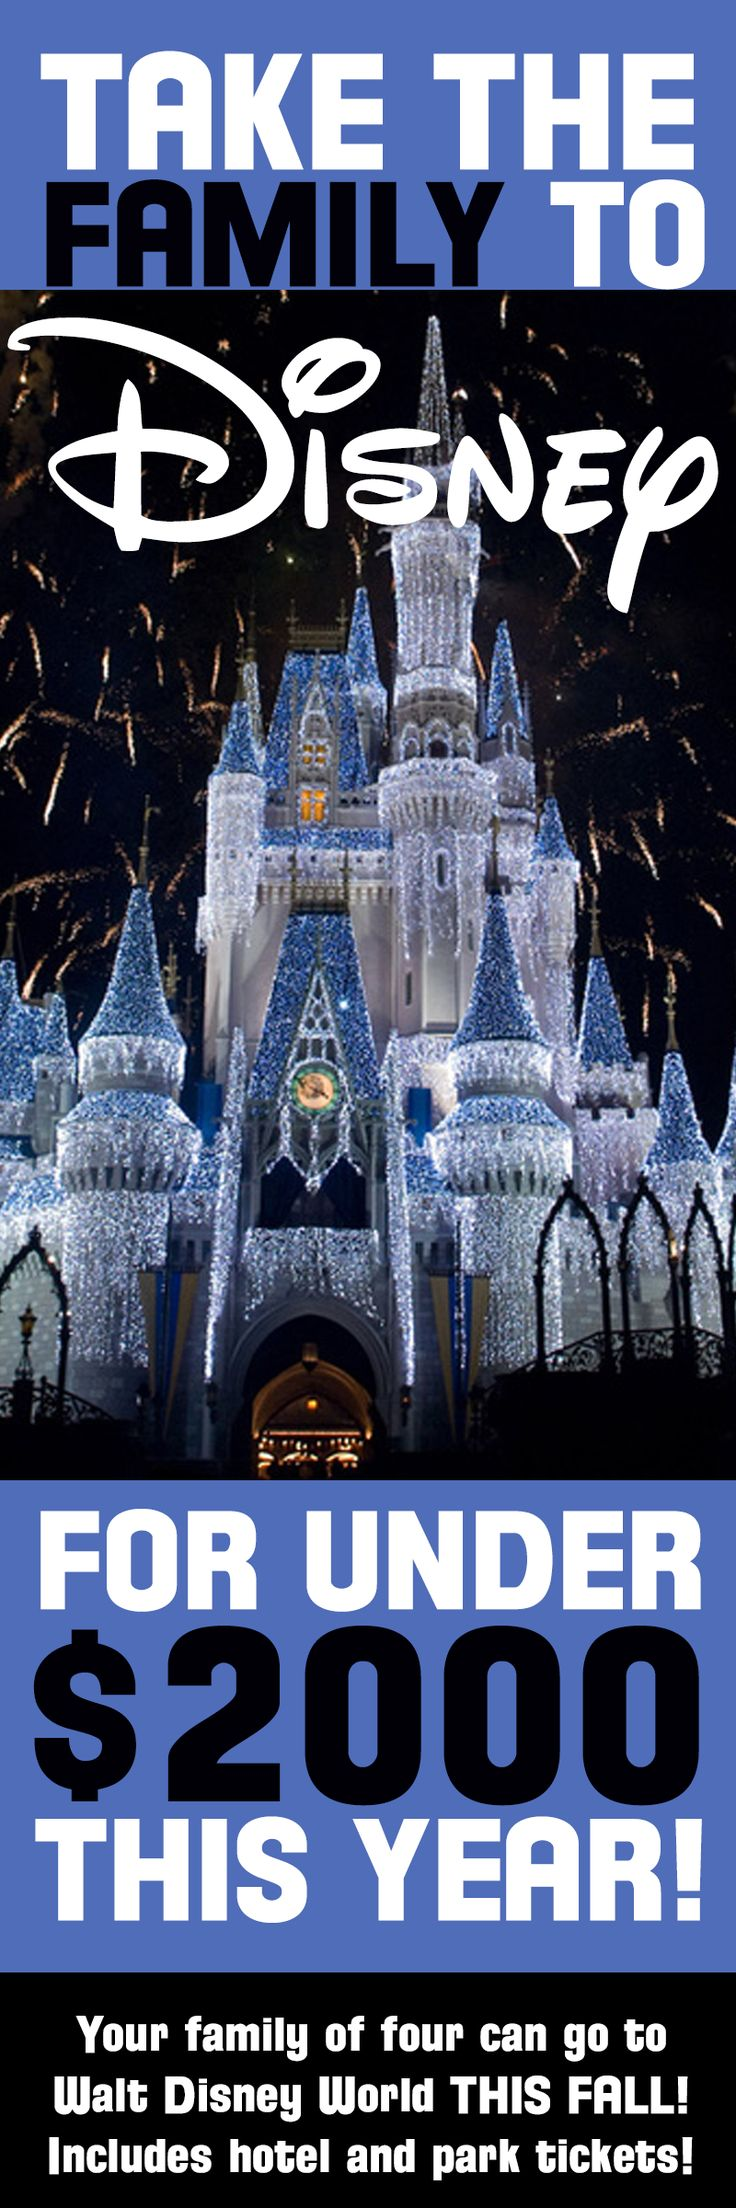 DISNEY DEAL – Take Your Family to Walt Disney World for Under $2000! #WDW #Disney #Deals #Bargains